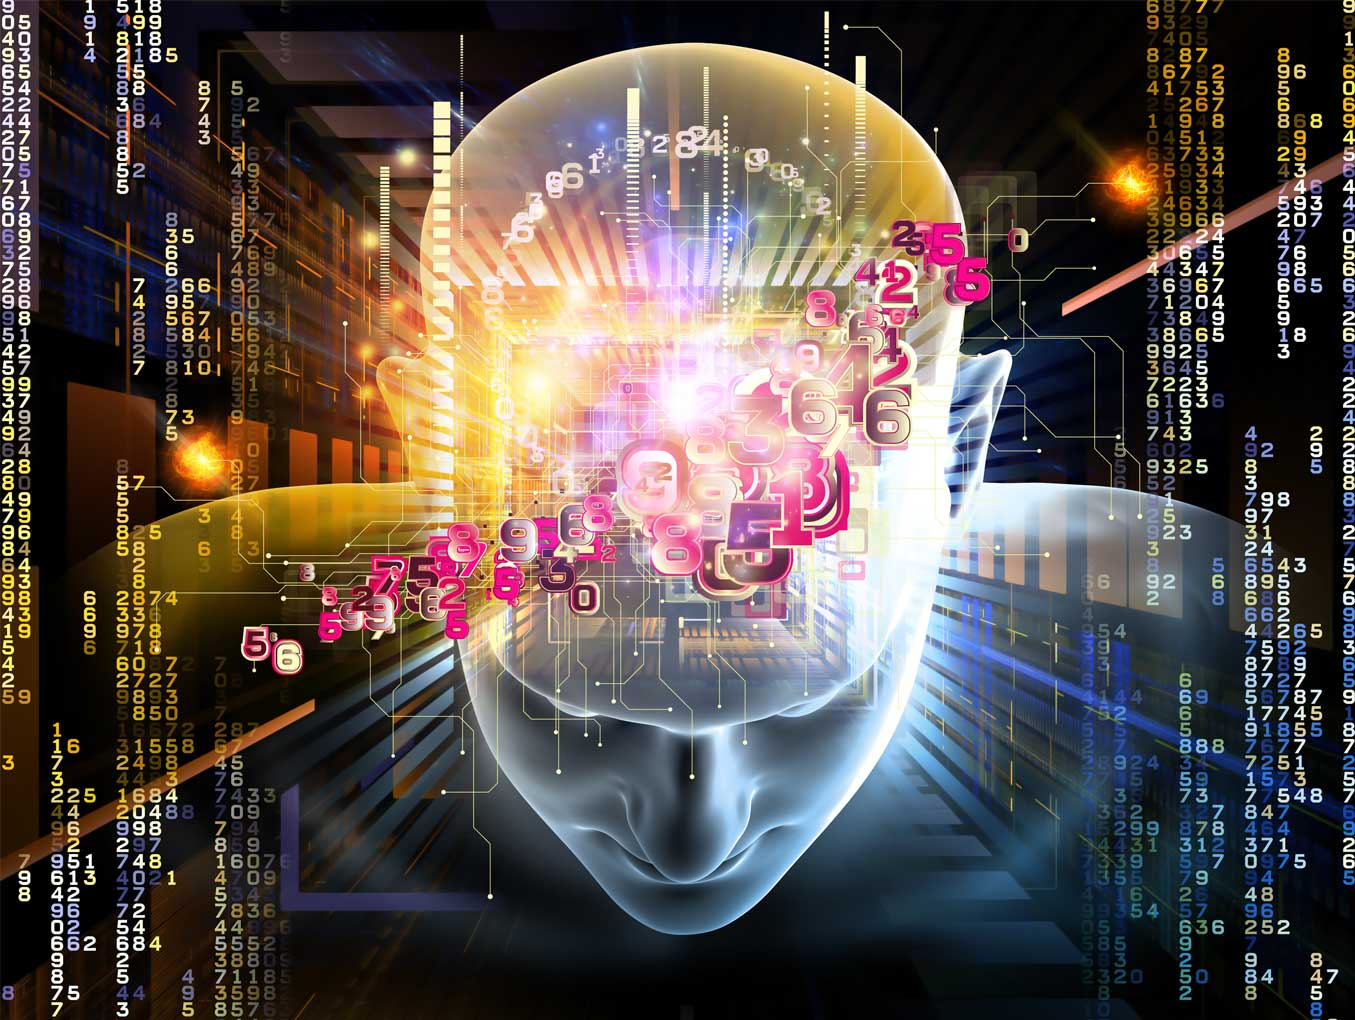 How will artificial intelligence drive marketing efforts?